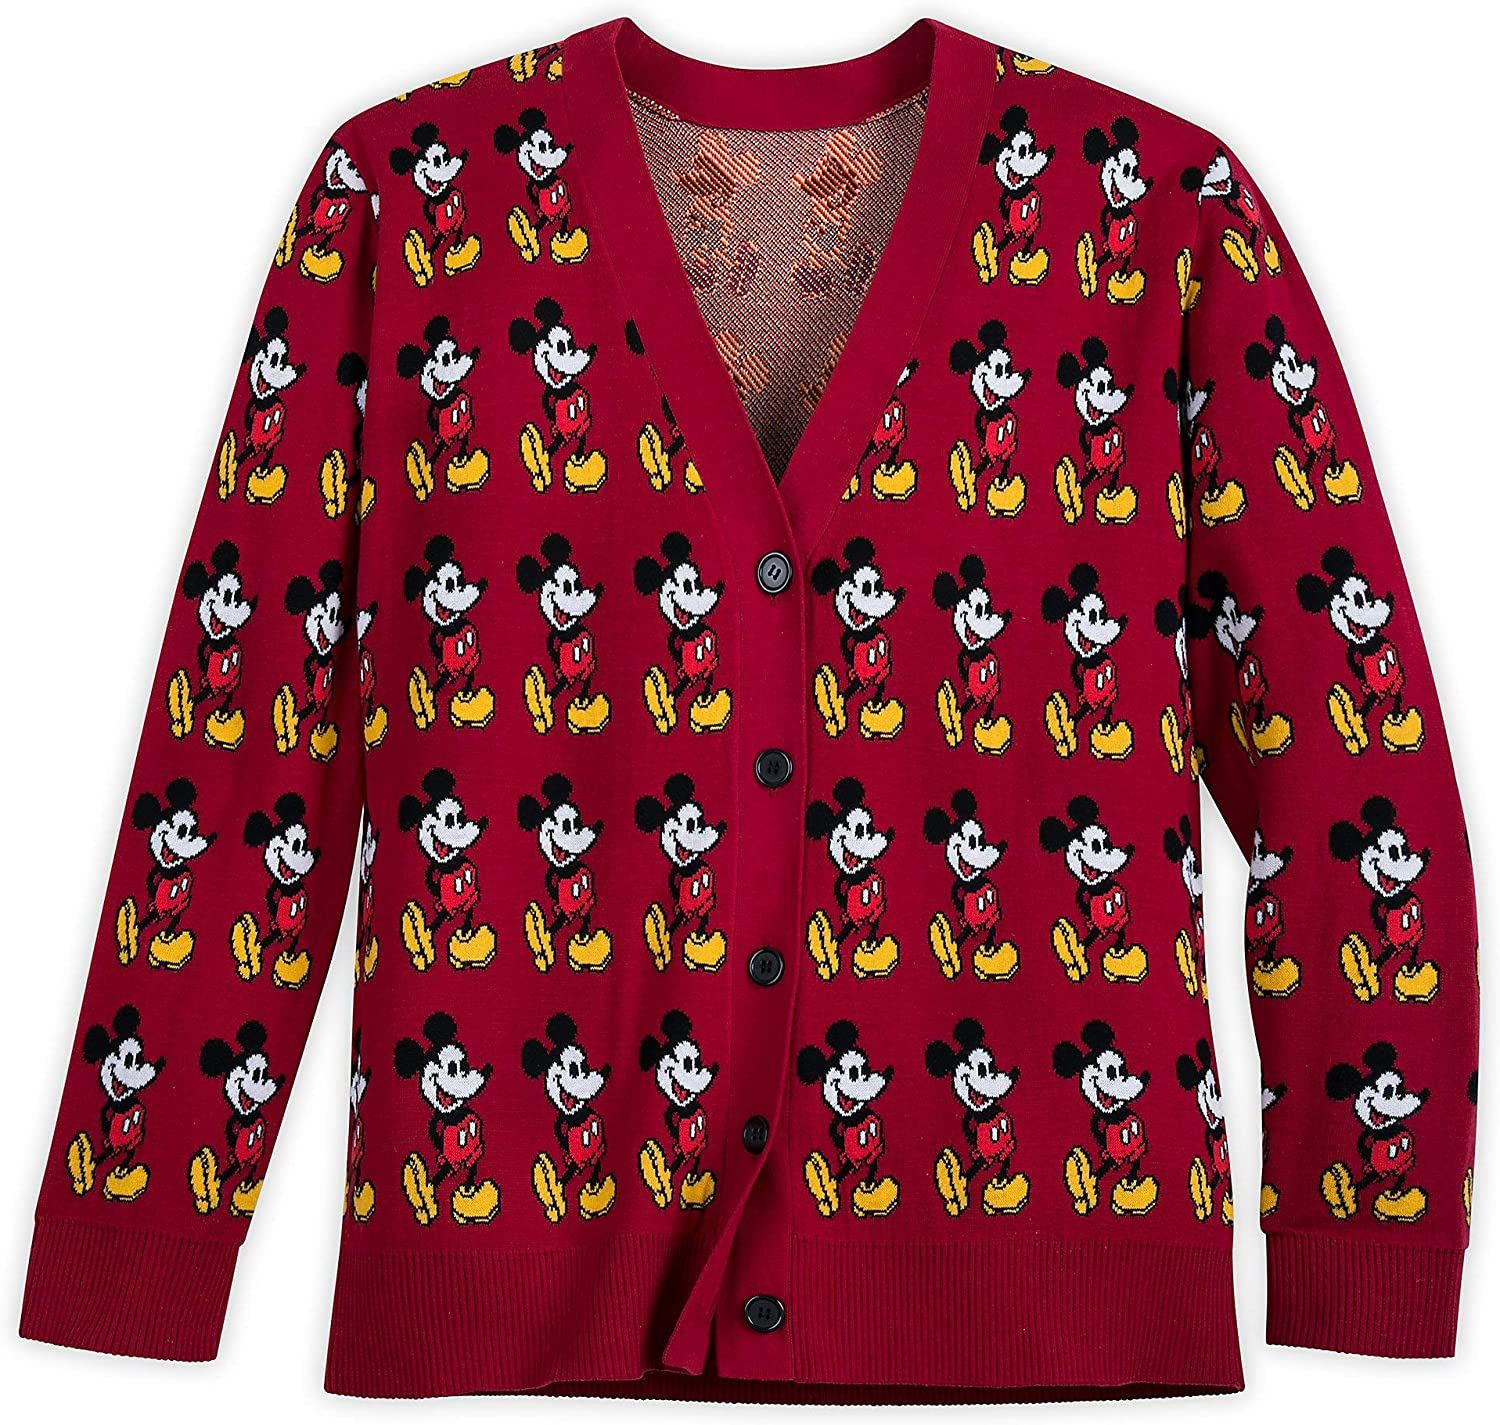 Disney Mickey Mouse Cardigan Sweater for Women Multi